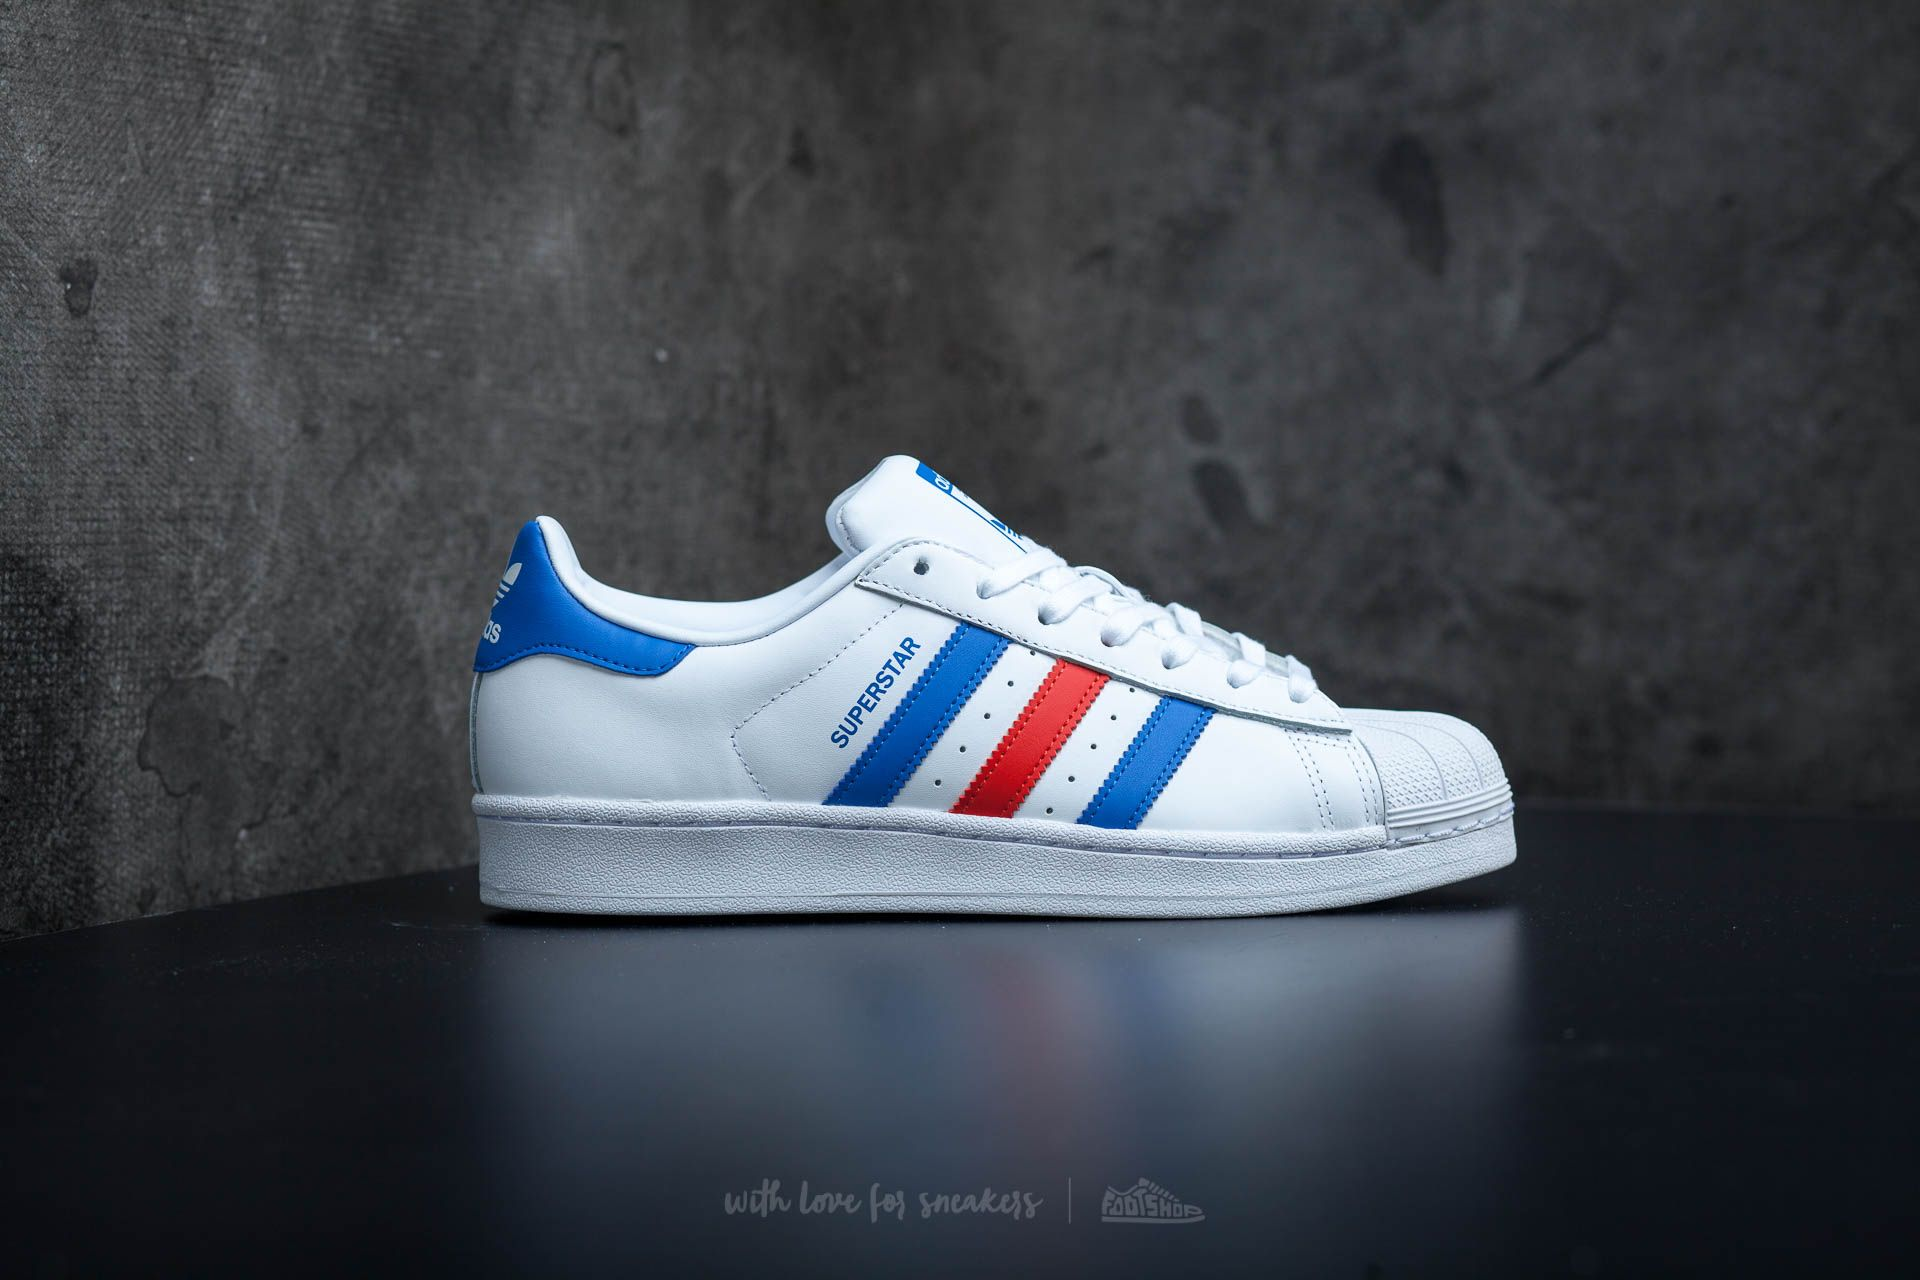 competitive price a7a7f df7c2 adidas Superstar Ftw White/ Blue/ Red | Footshop